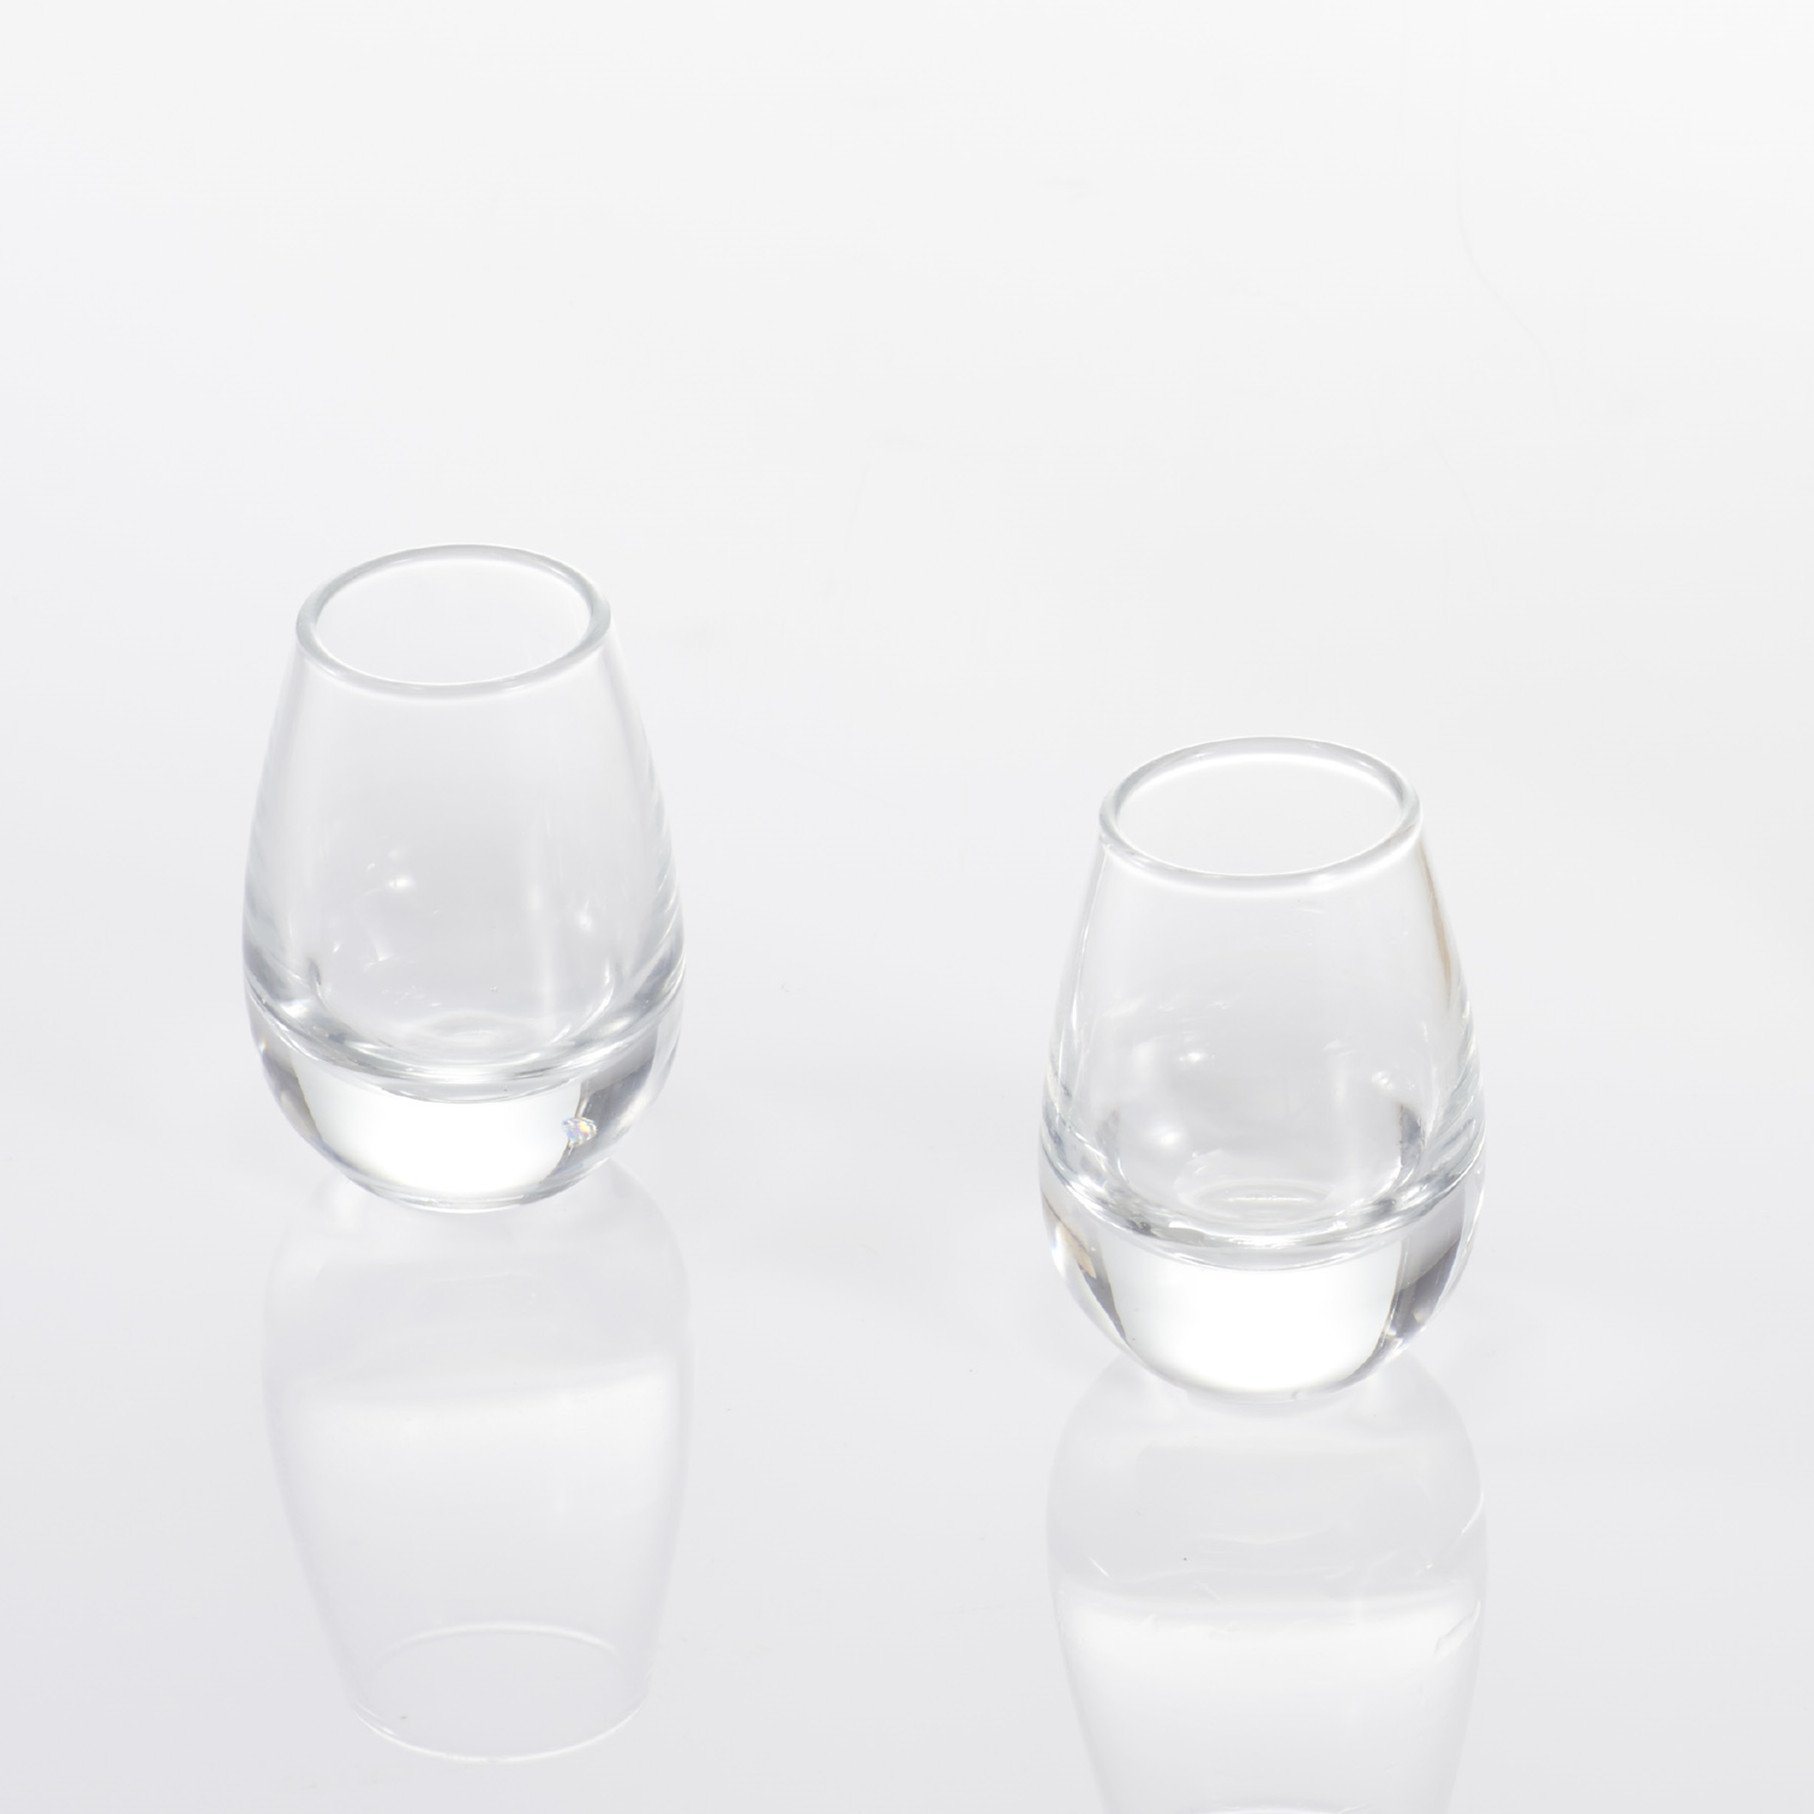 ZENS Sake Cups Set, 2 Pieces High Borosilicate Glass Cup 1.4OZ/40ML, Perfect for Sake Wine Liquor